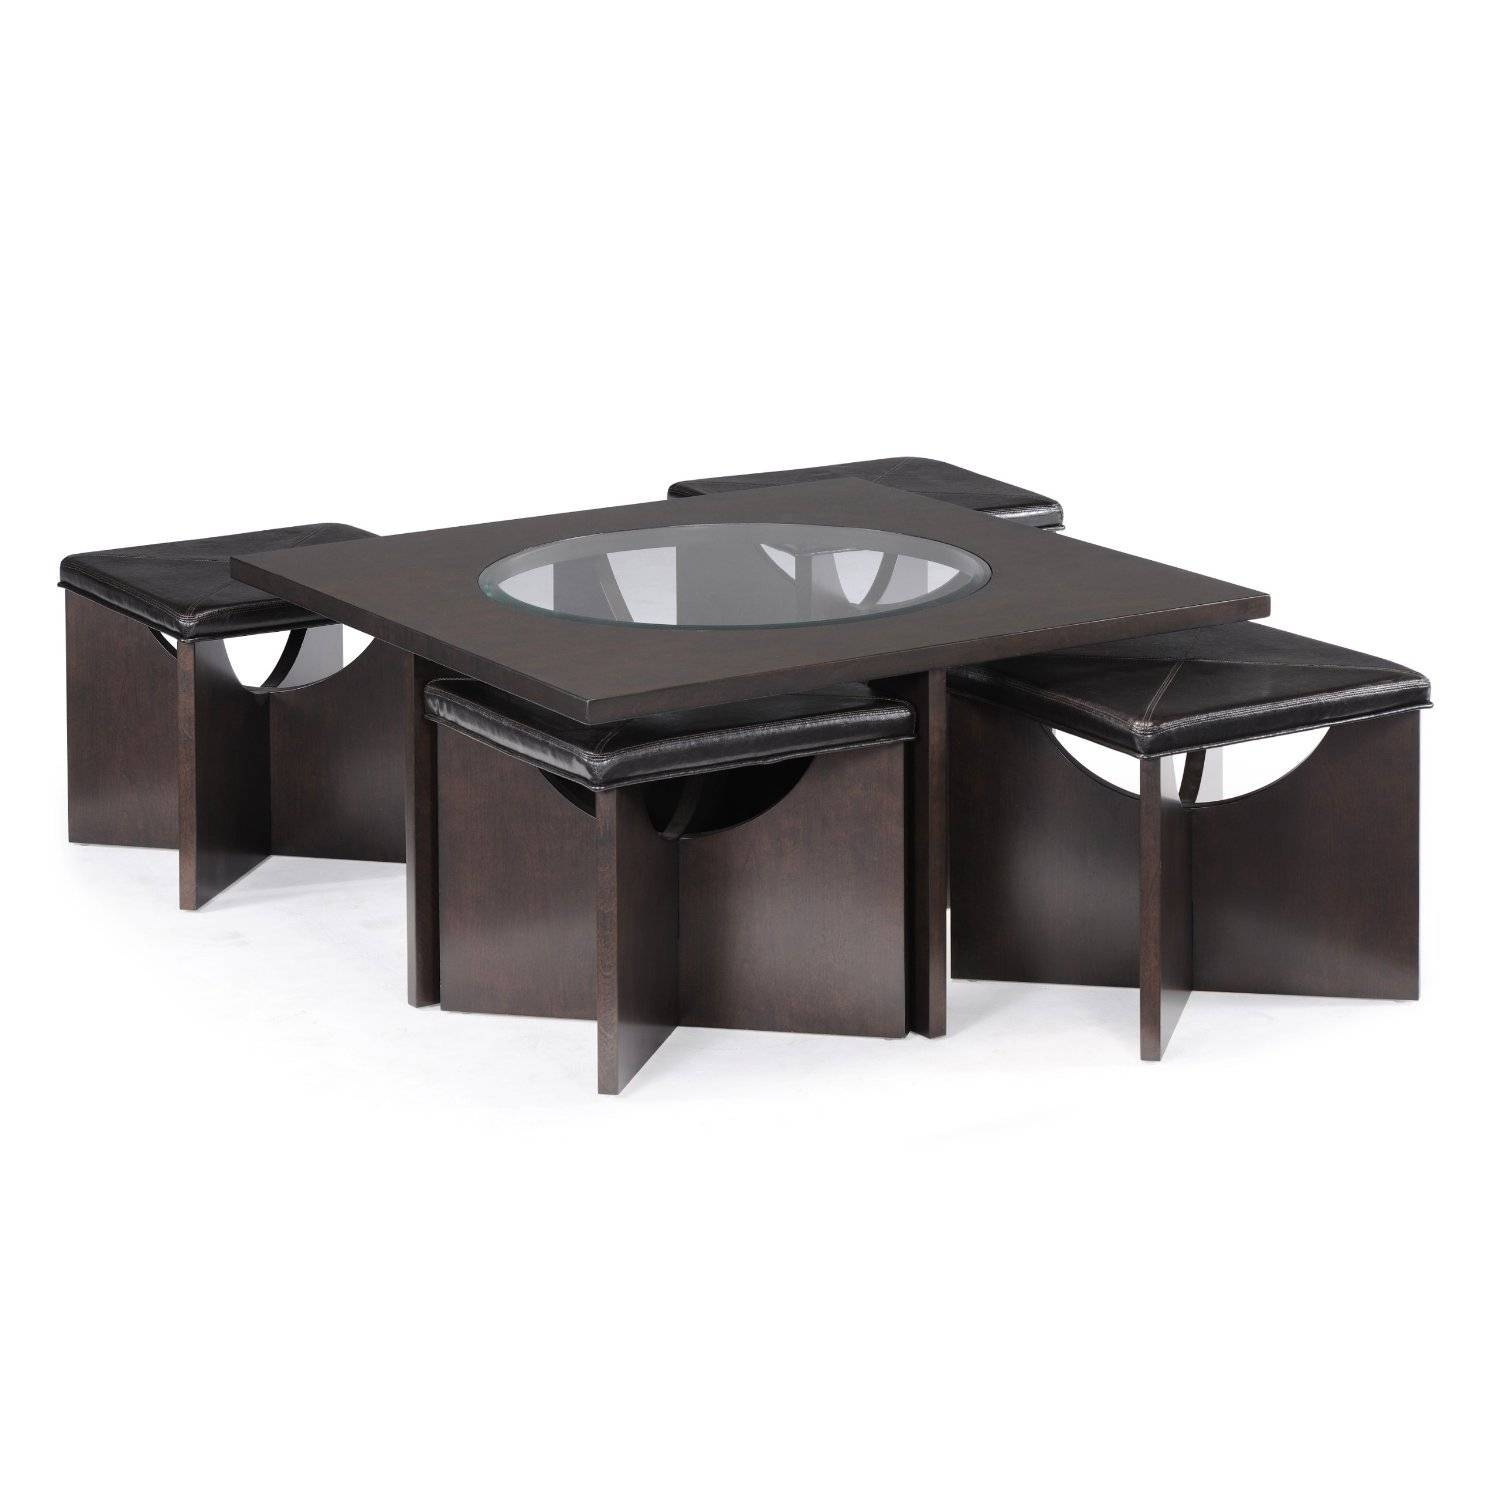 Furniture: Luxury Coffee Table With Stools For Living Room with Hardwood Coffee Tables With Storage (Image 17 of 30)